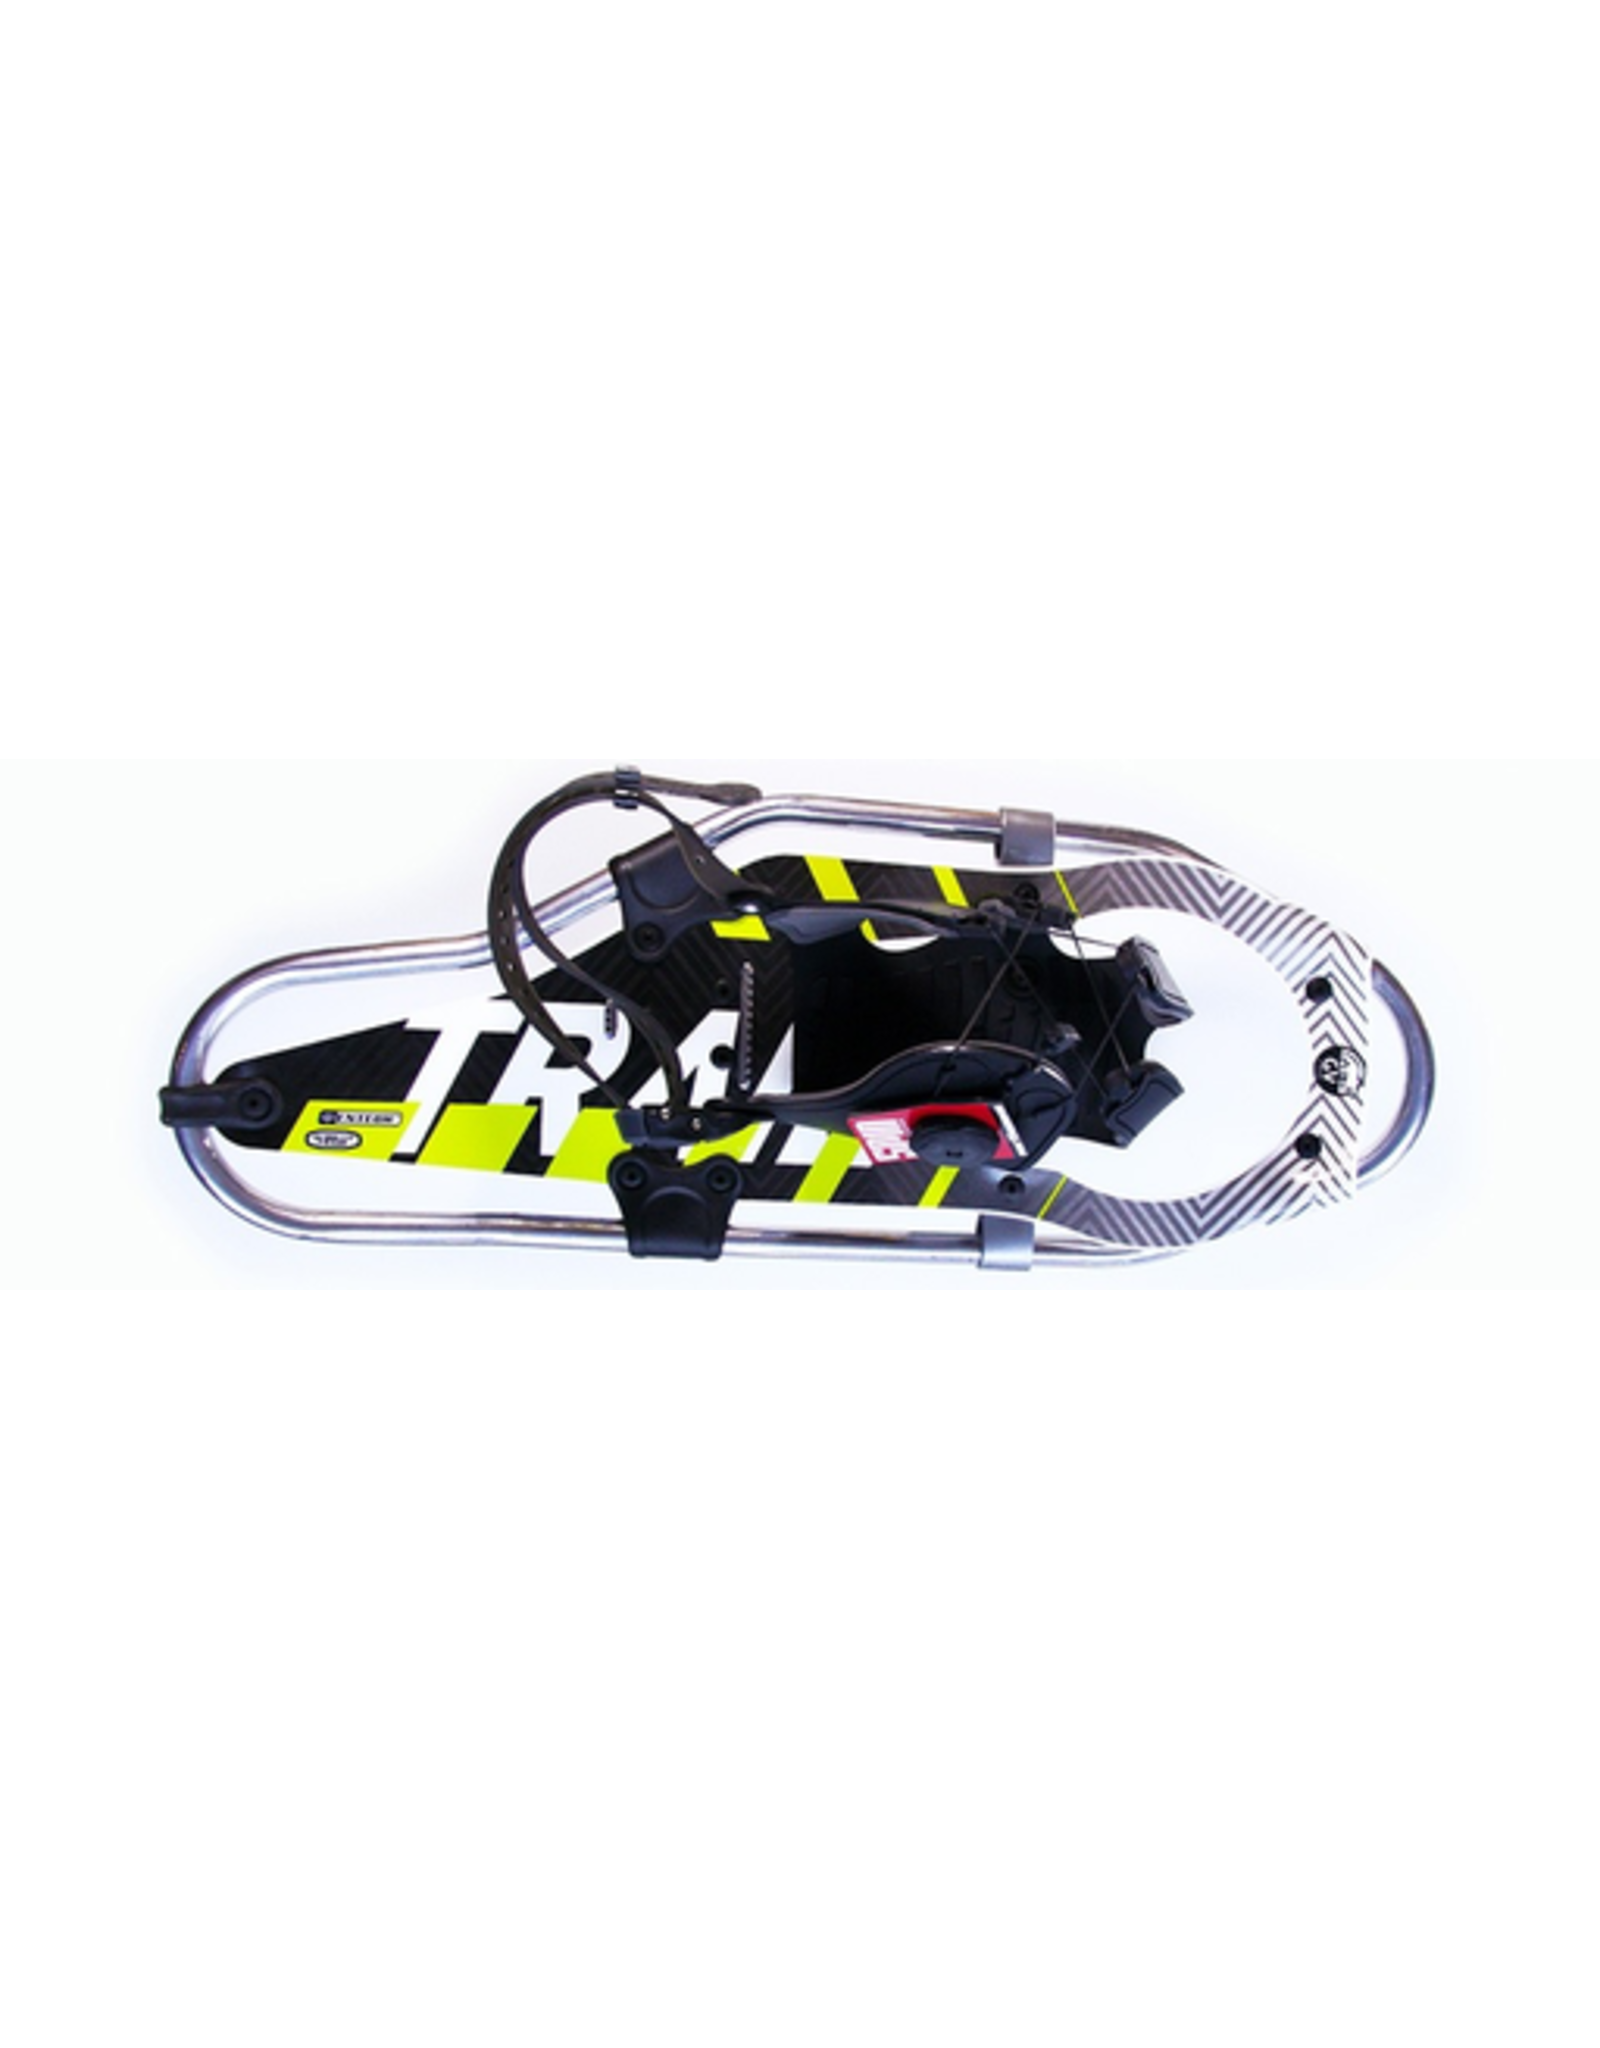 GV Snowshoes GV Unisex Cat Trail Spin Snowshoe, 8x22